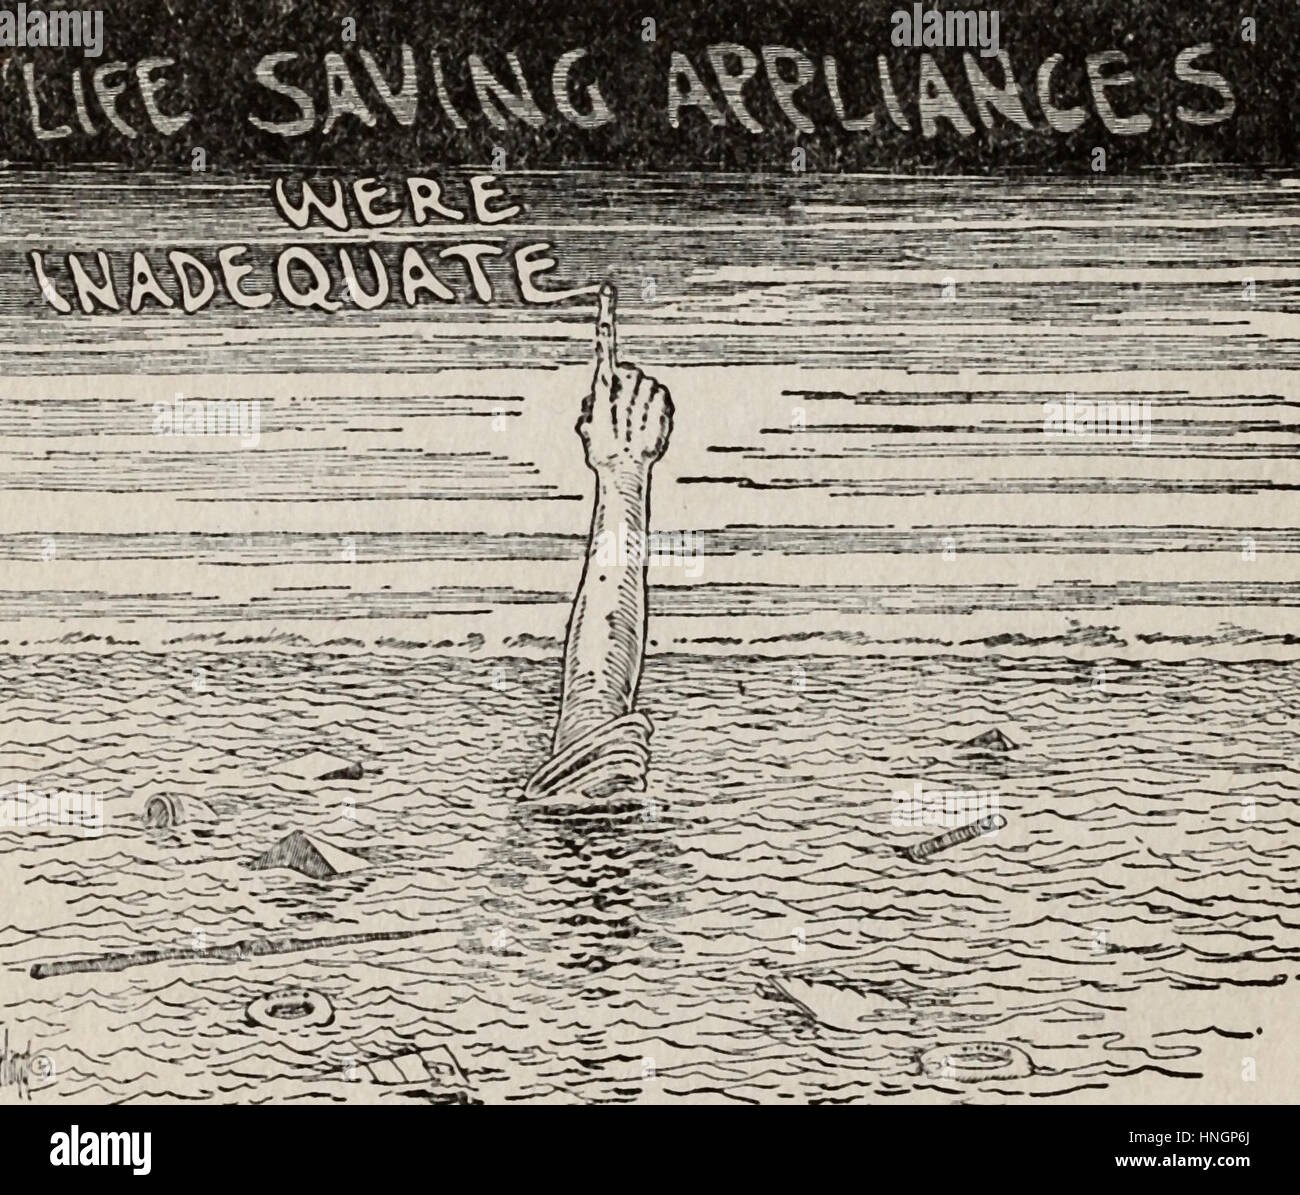 Life saving appliances were inadequate - Political cartoon after the Titanic Disaster - Stock Image